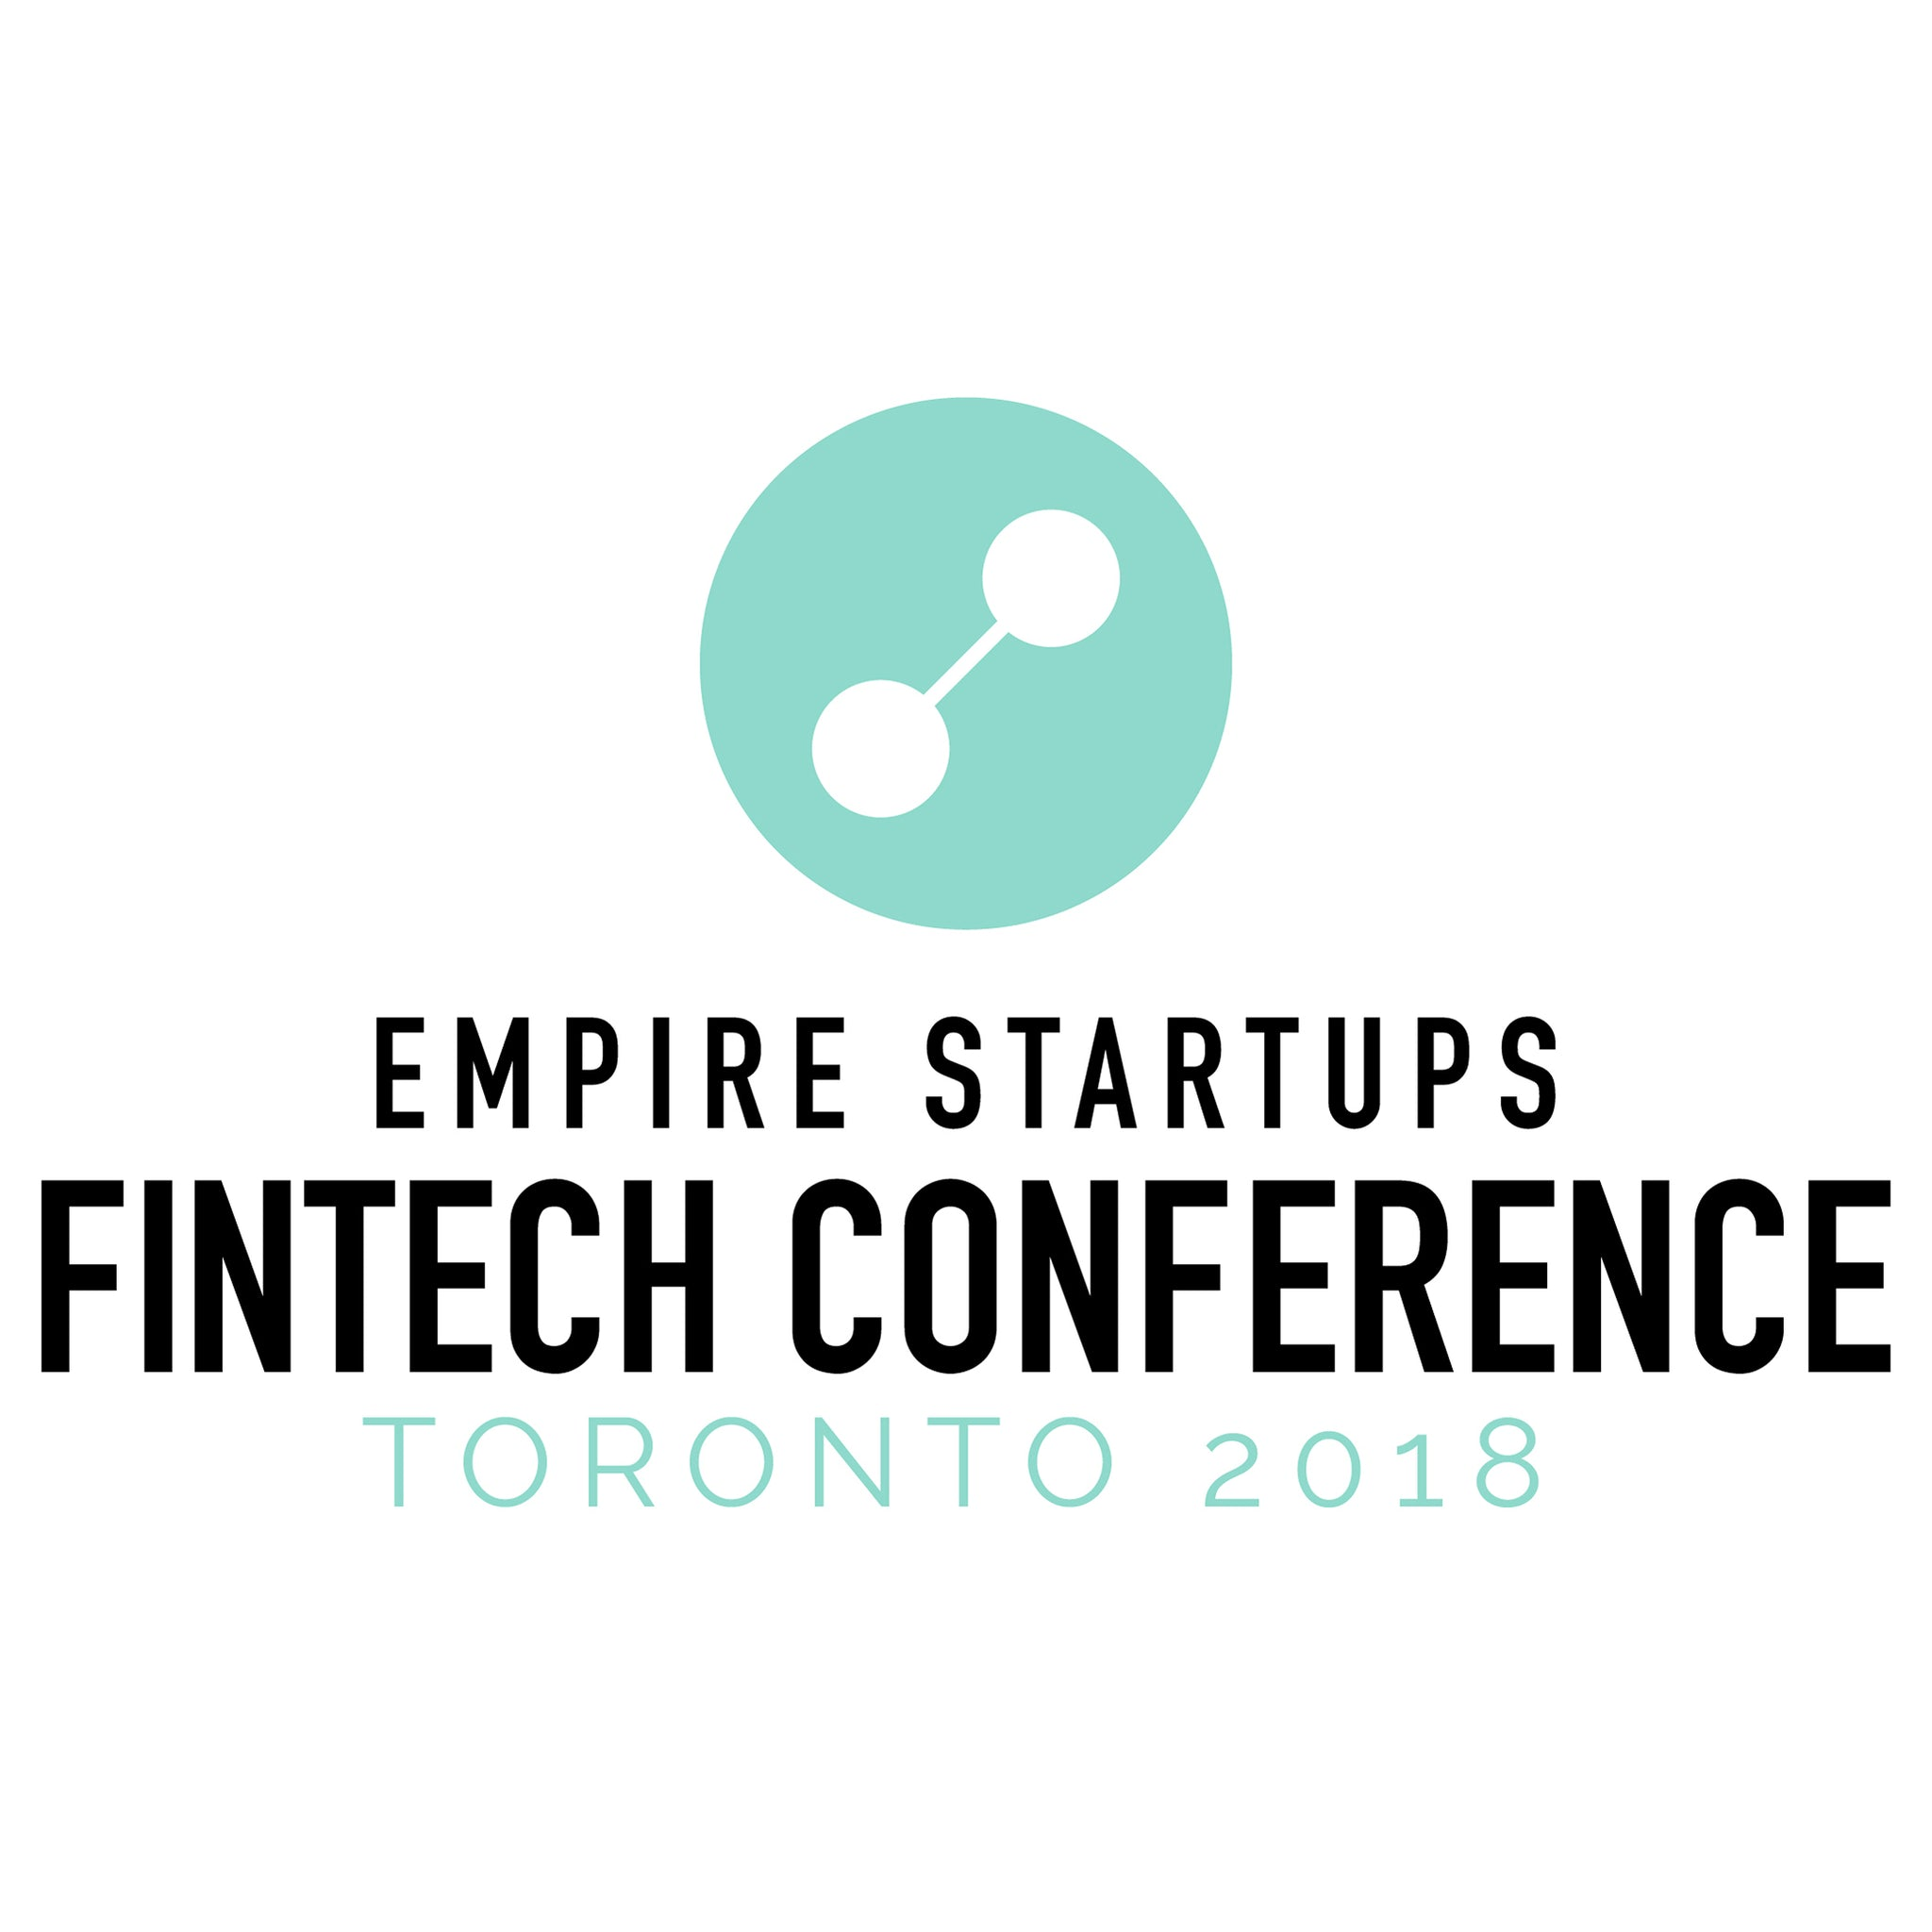 Luxembourg TO18 - Empire Startups FinTech Conference